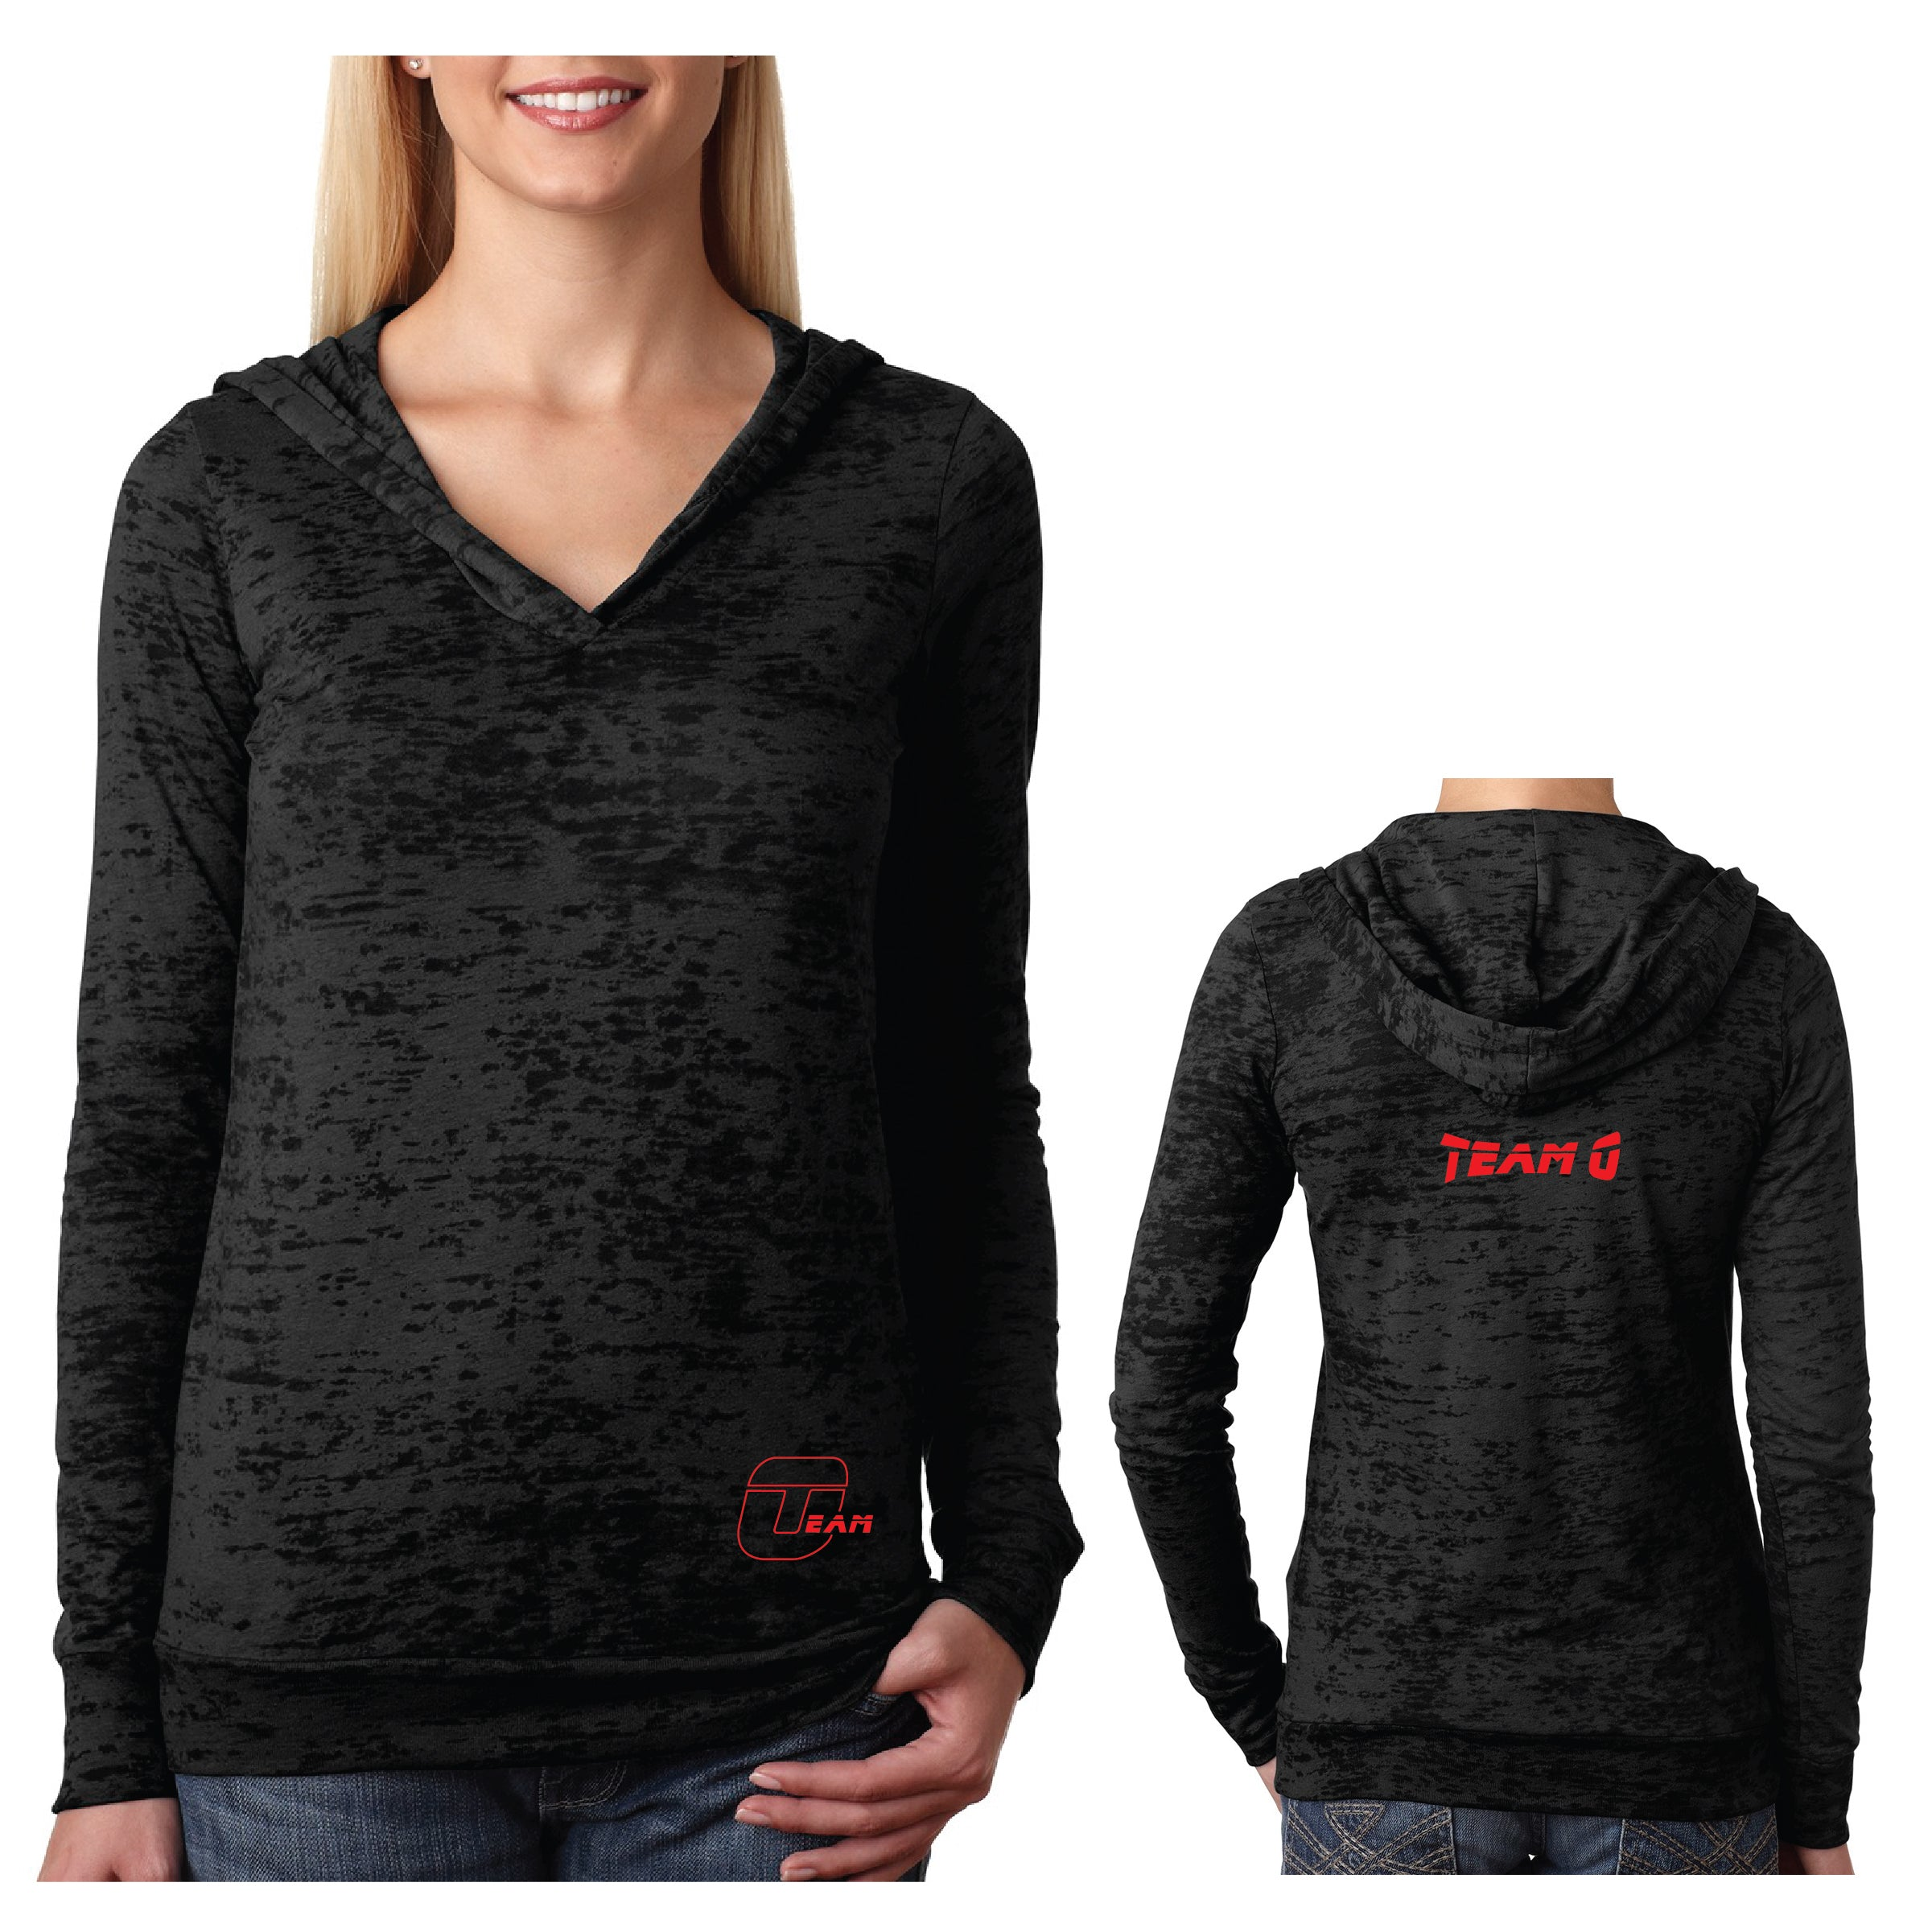 Team O Next Level Ladies' Burnout Hoody